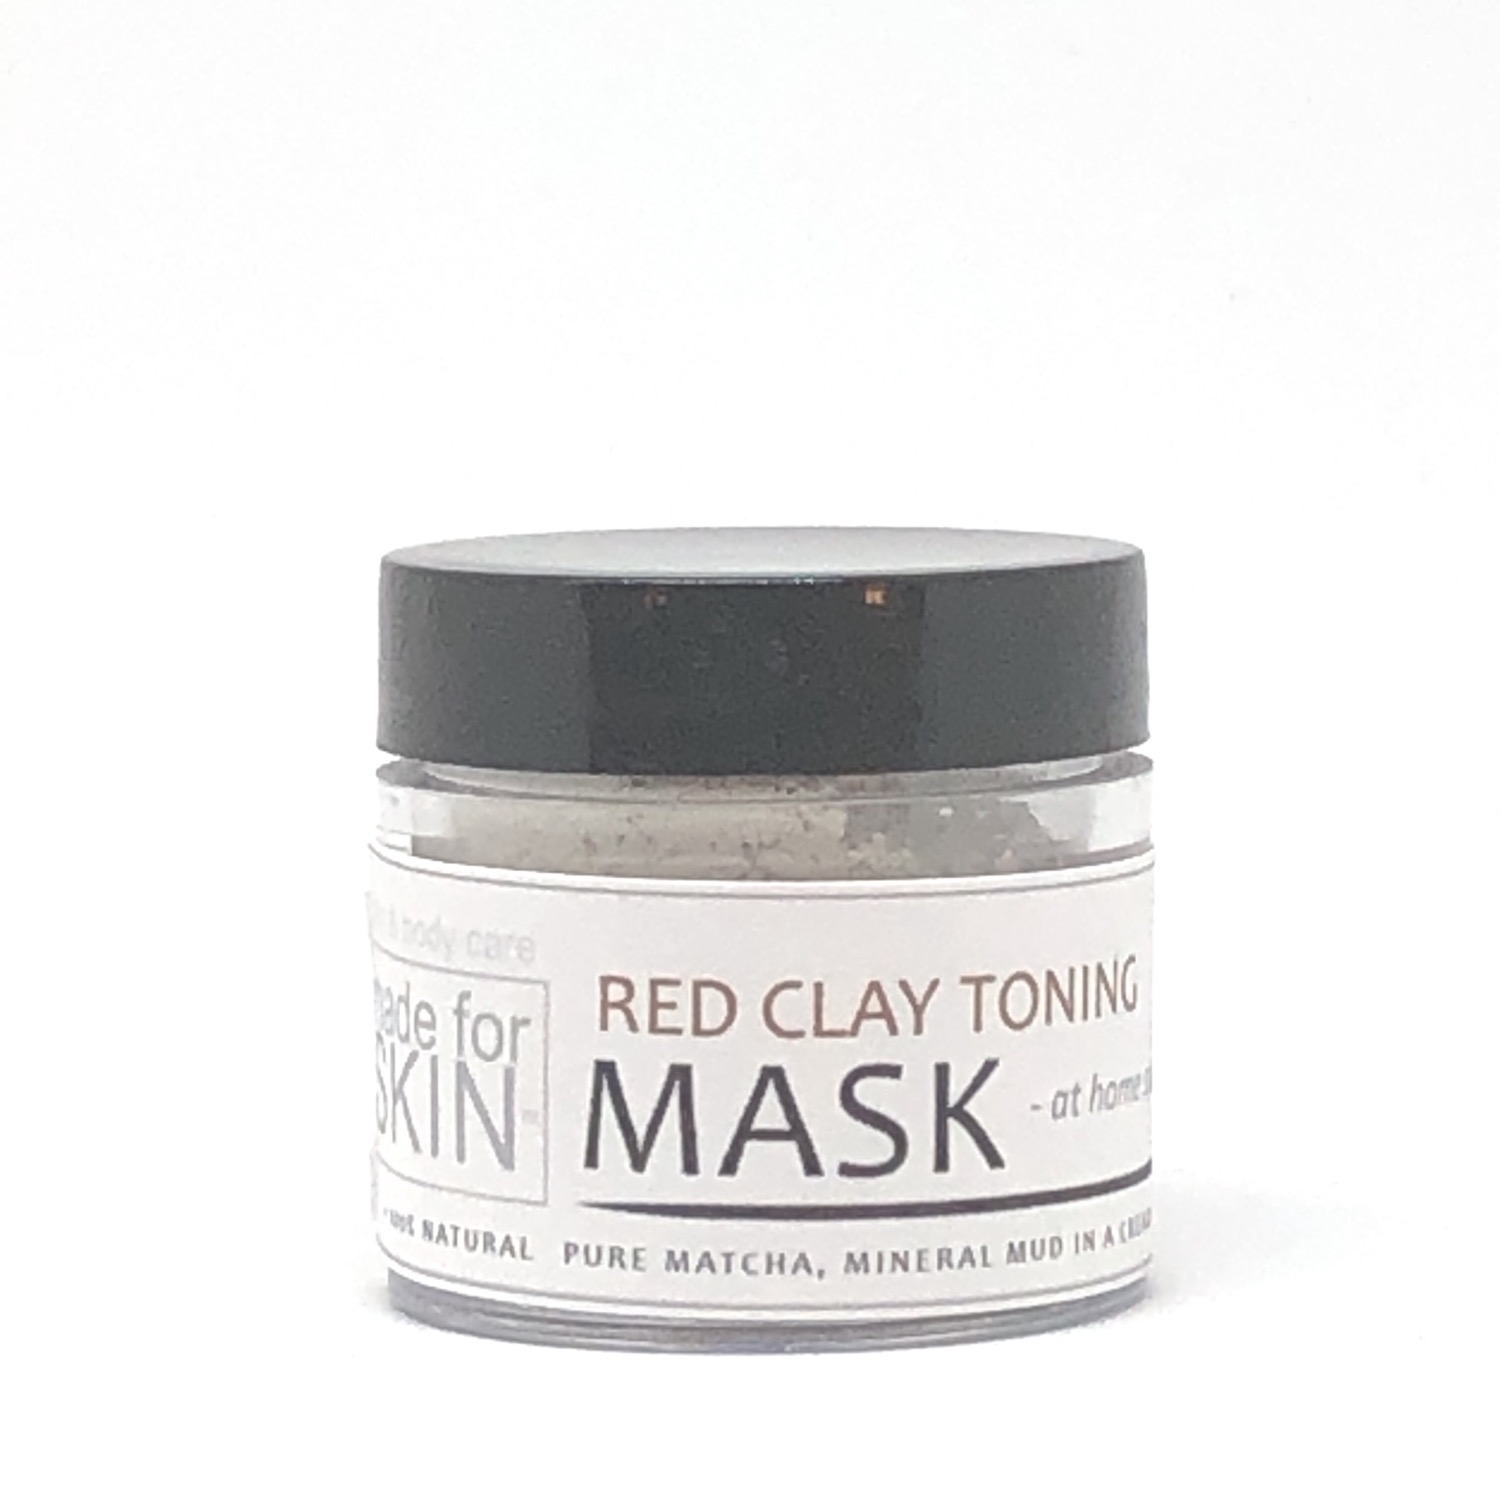 Red Clay Toning Mud Mask | made for SKIN